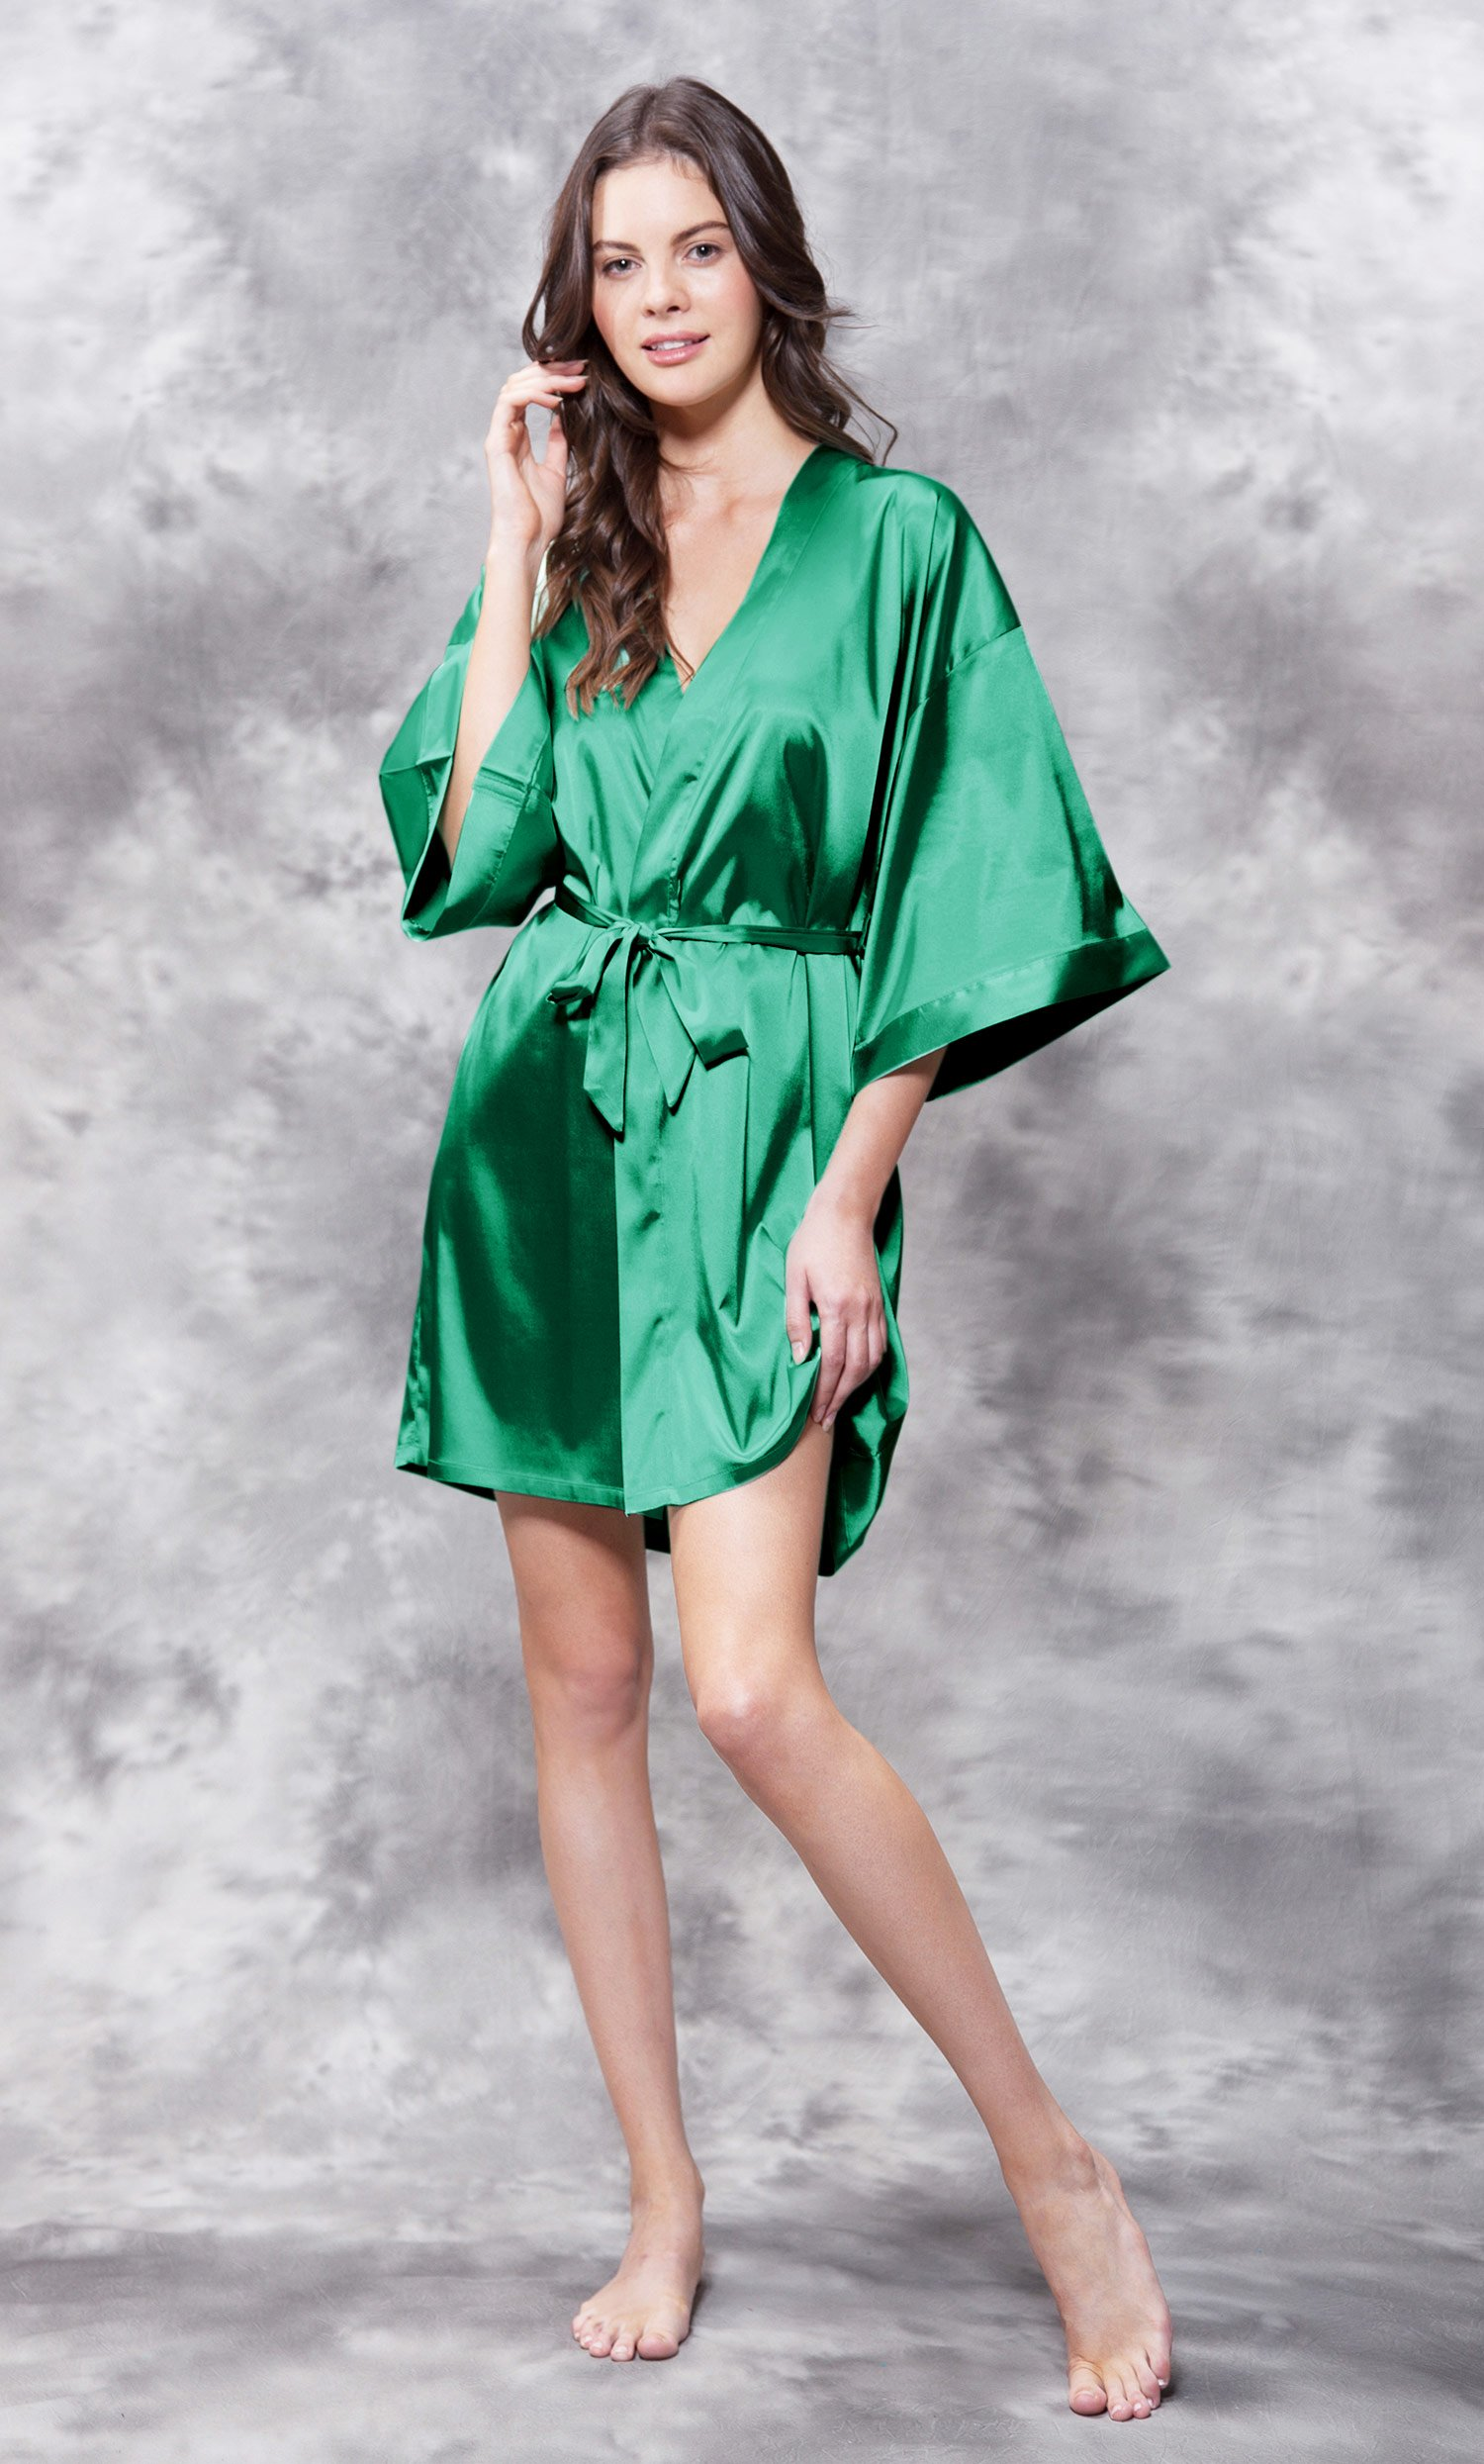 Matron of Honor Clear Rhinestone Satin Kimono Lush Meadow Green Short Robe-Robemart.com